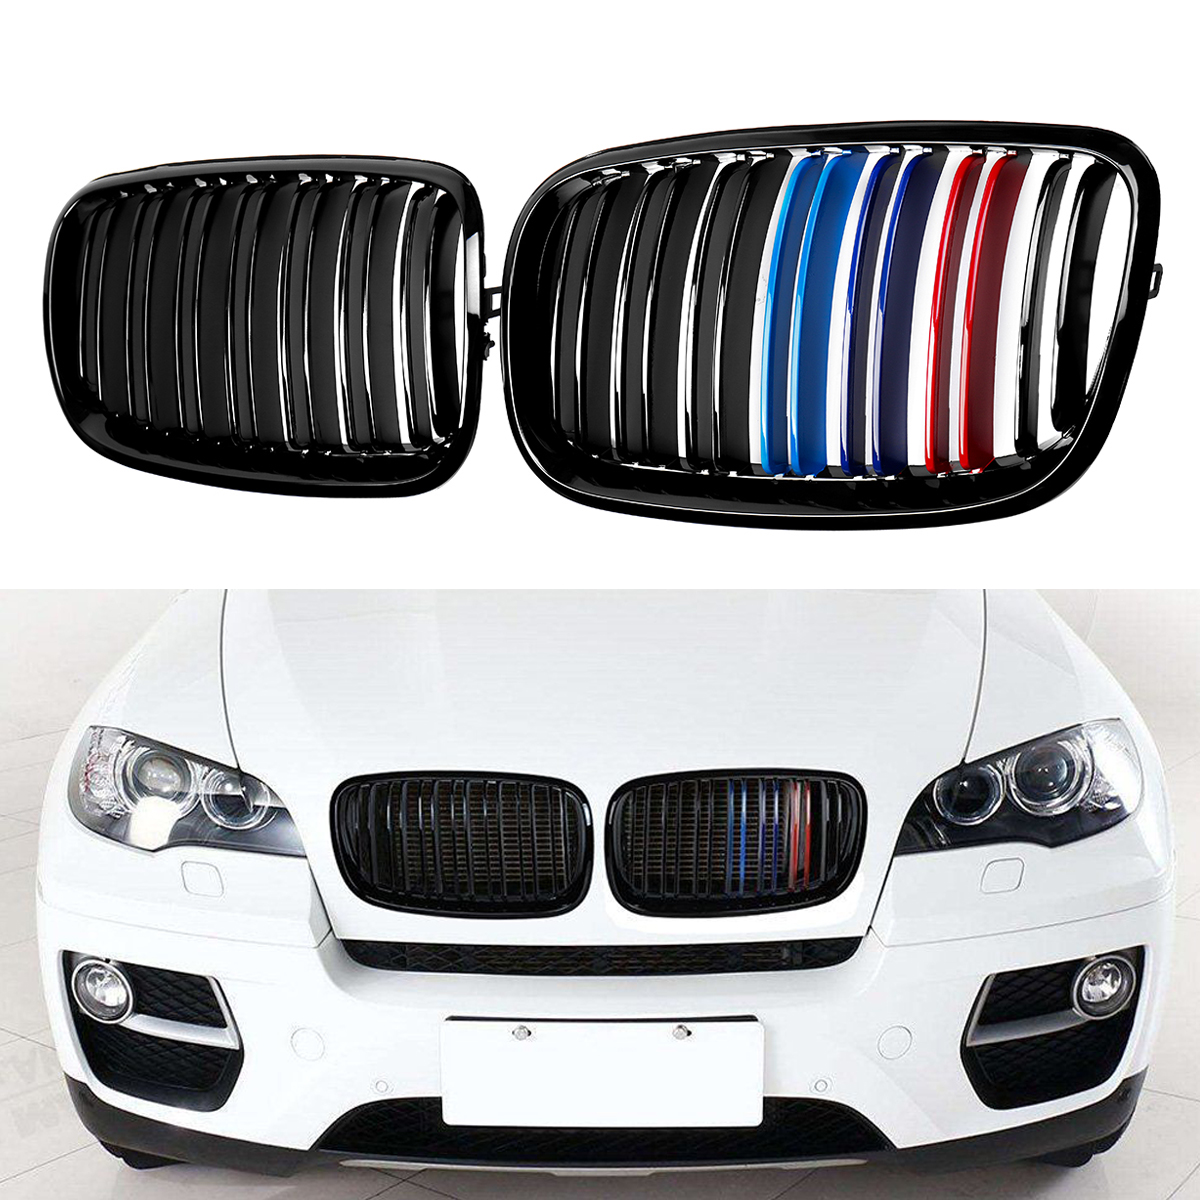 A Pair Car Racing Grille For BMW 2007-2013 X5 X6 E70 E71 Glossy Black M-Color Front Grille Grill Kidney Glossy Black Dual Slat 2007 2013 kidney shape matte black abs plastic e70 e71 original style x5 x6 front racing grill grille for bmw e70 x5 bmw x6